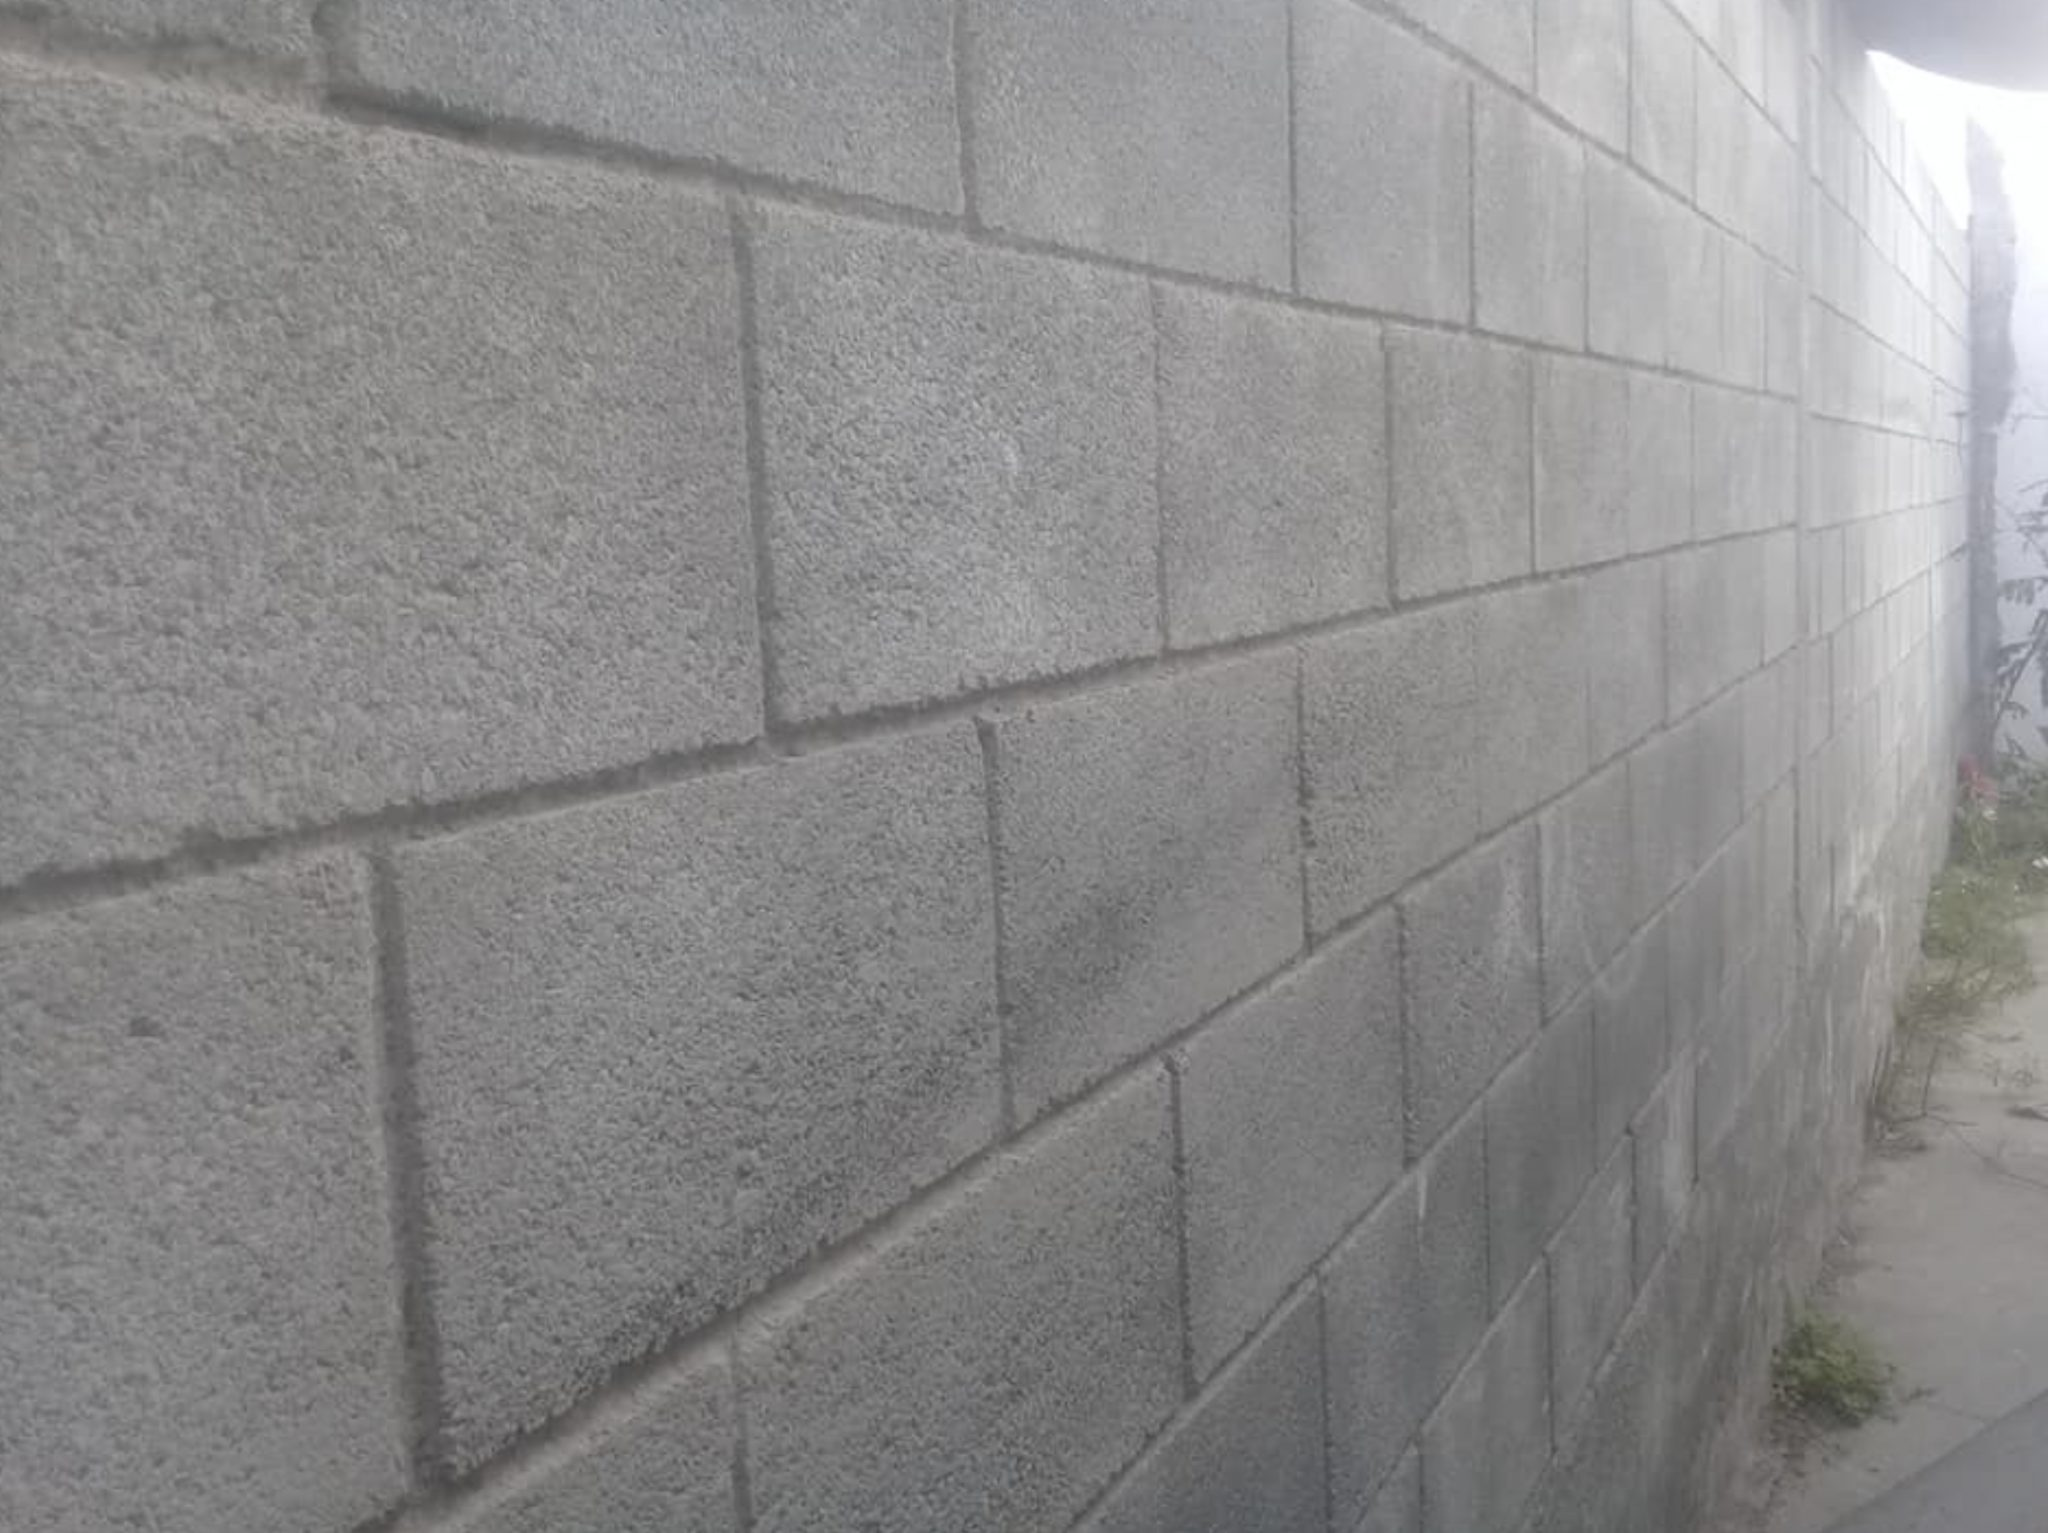 this image shows concrete walls in Concord, California